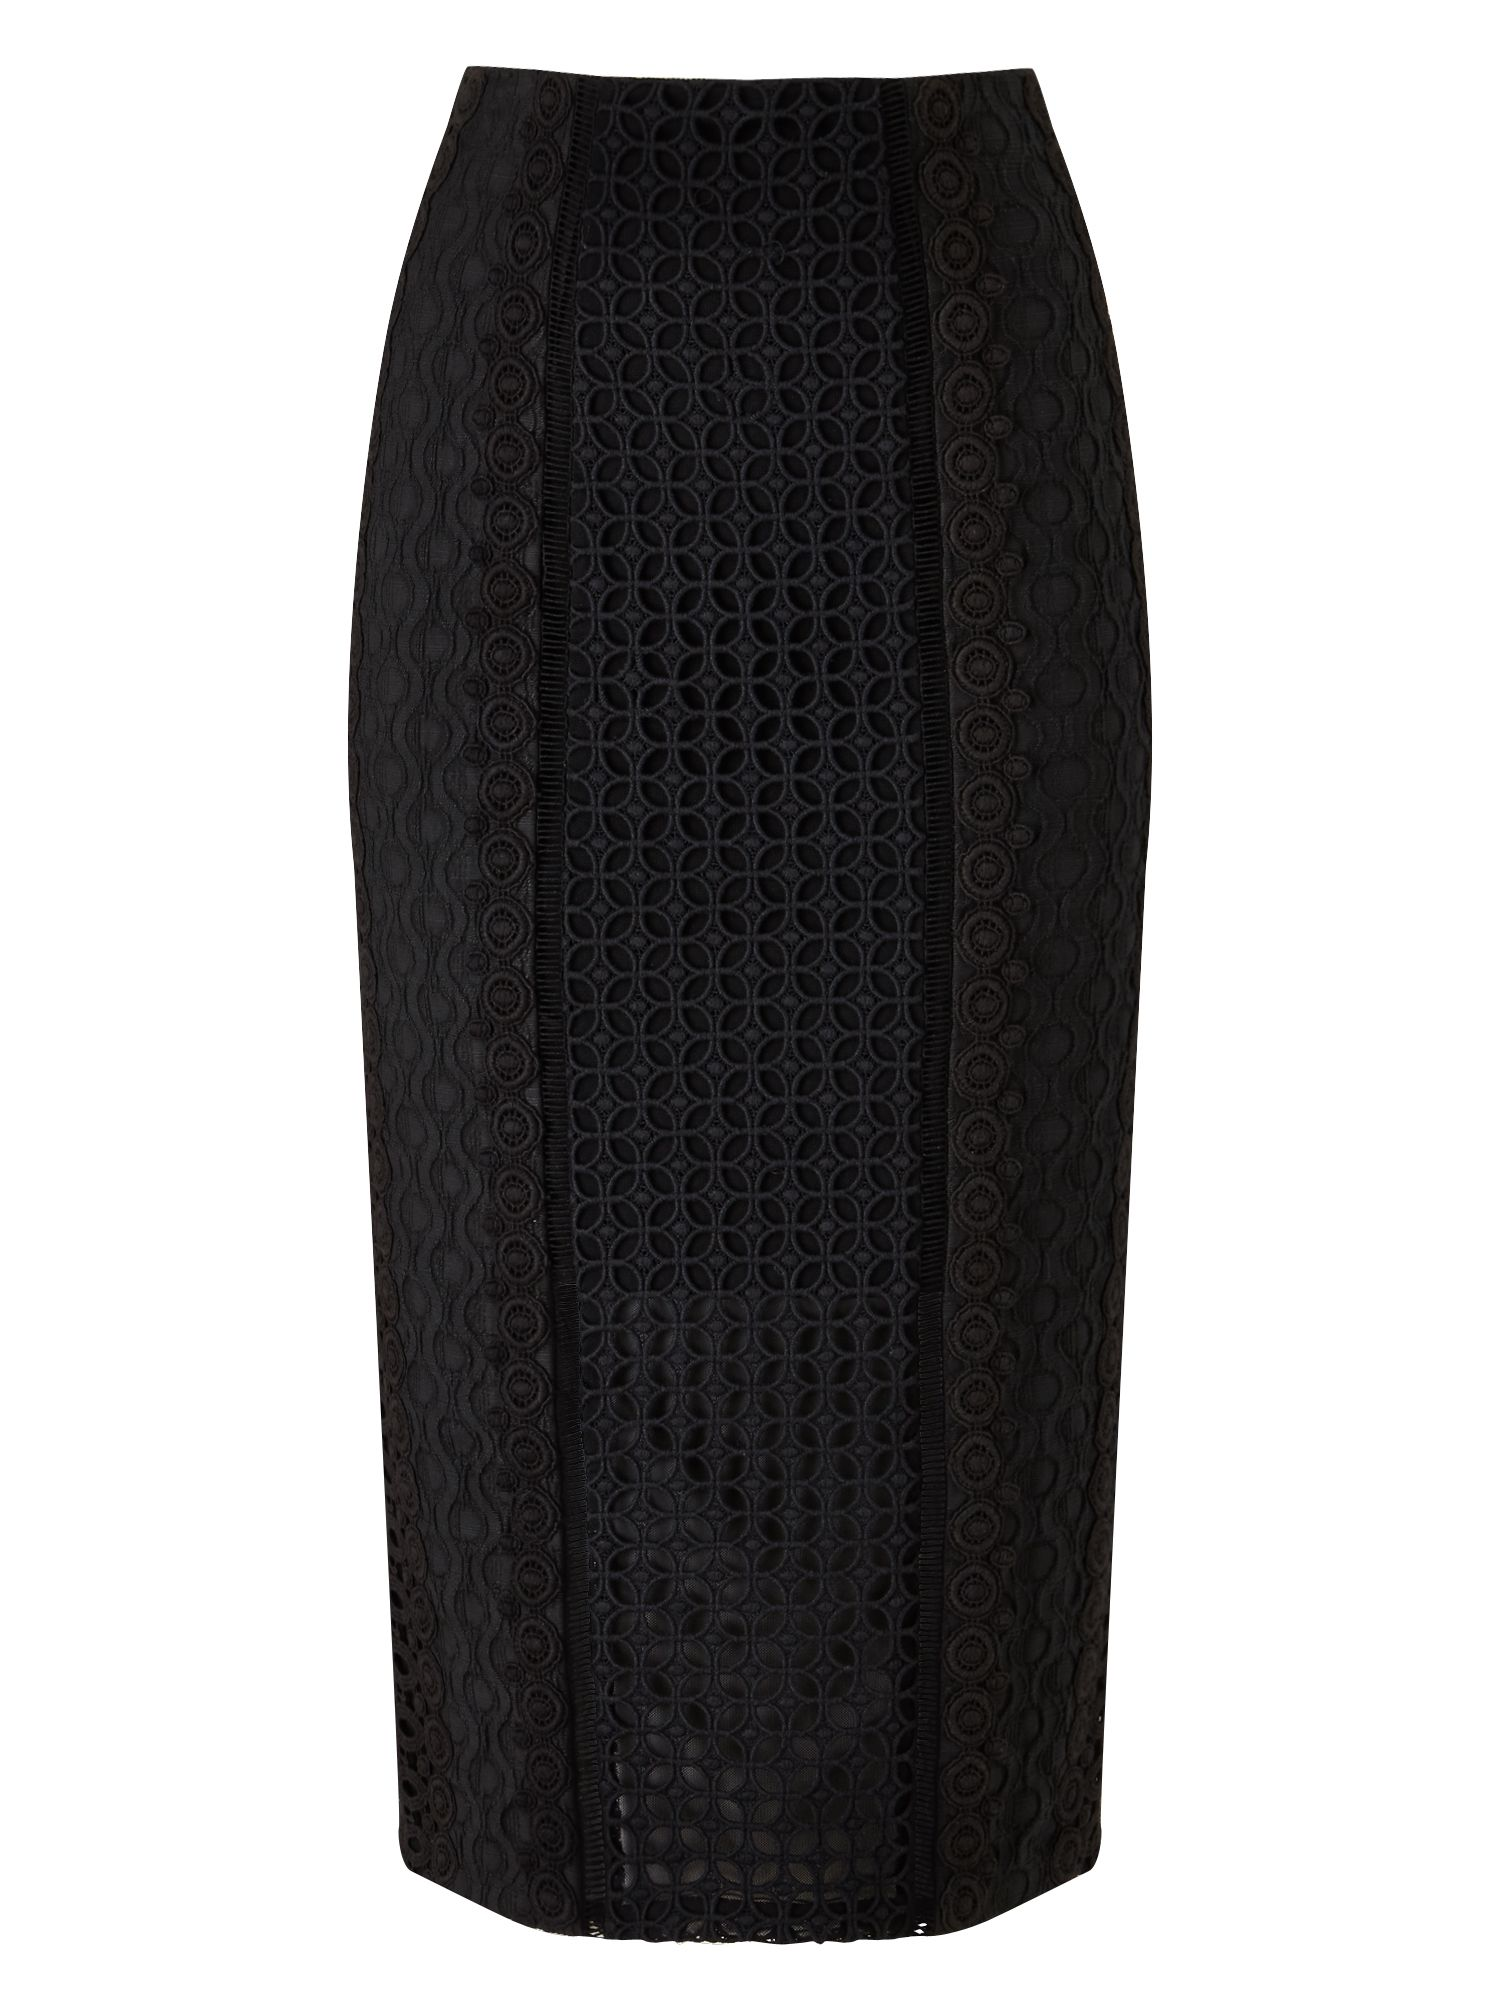 Precis Petite Elora Embroidery Pencil Skirt, Black